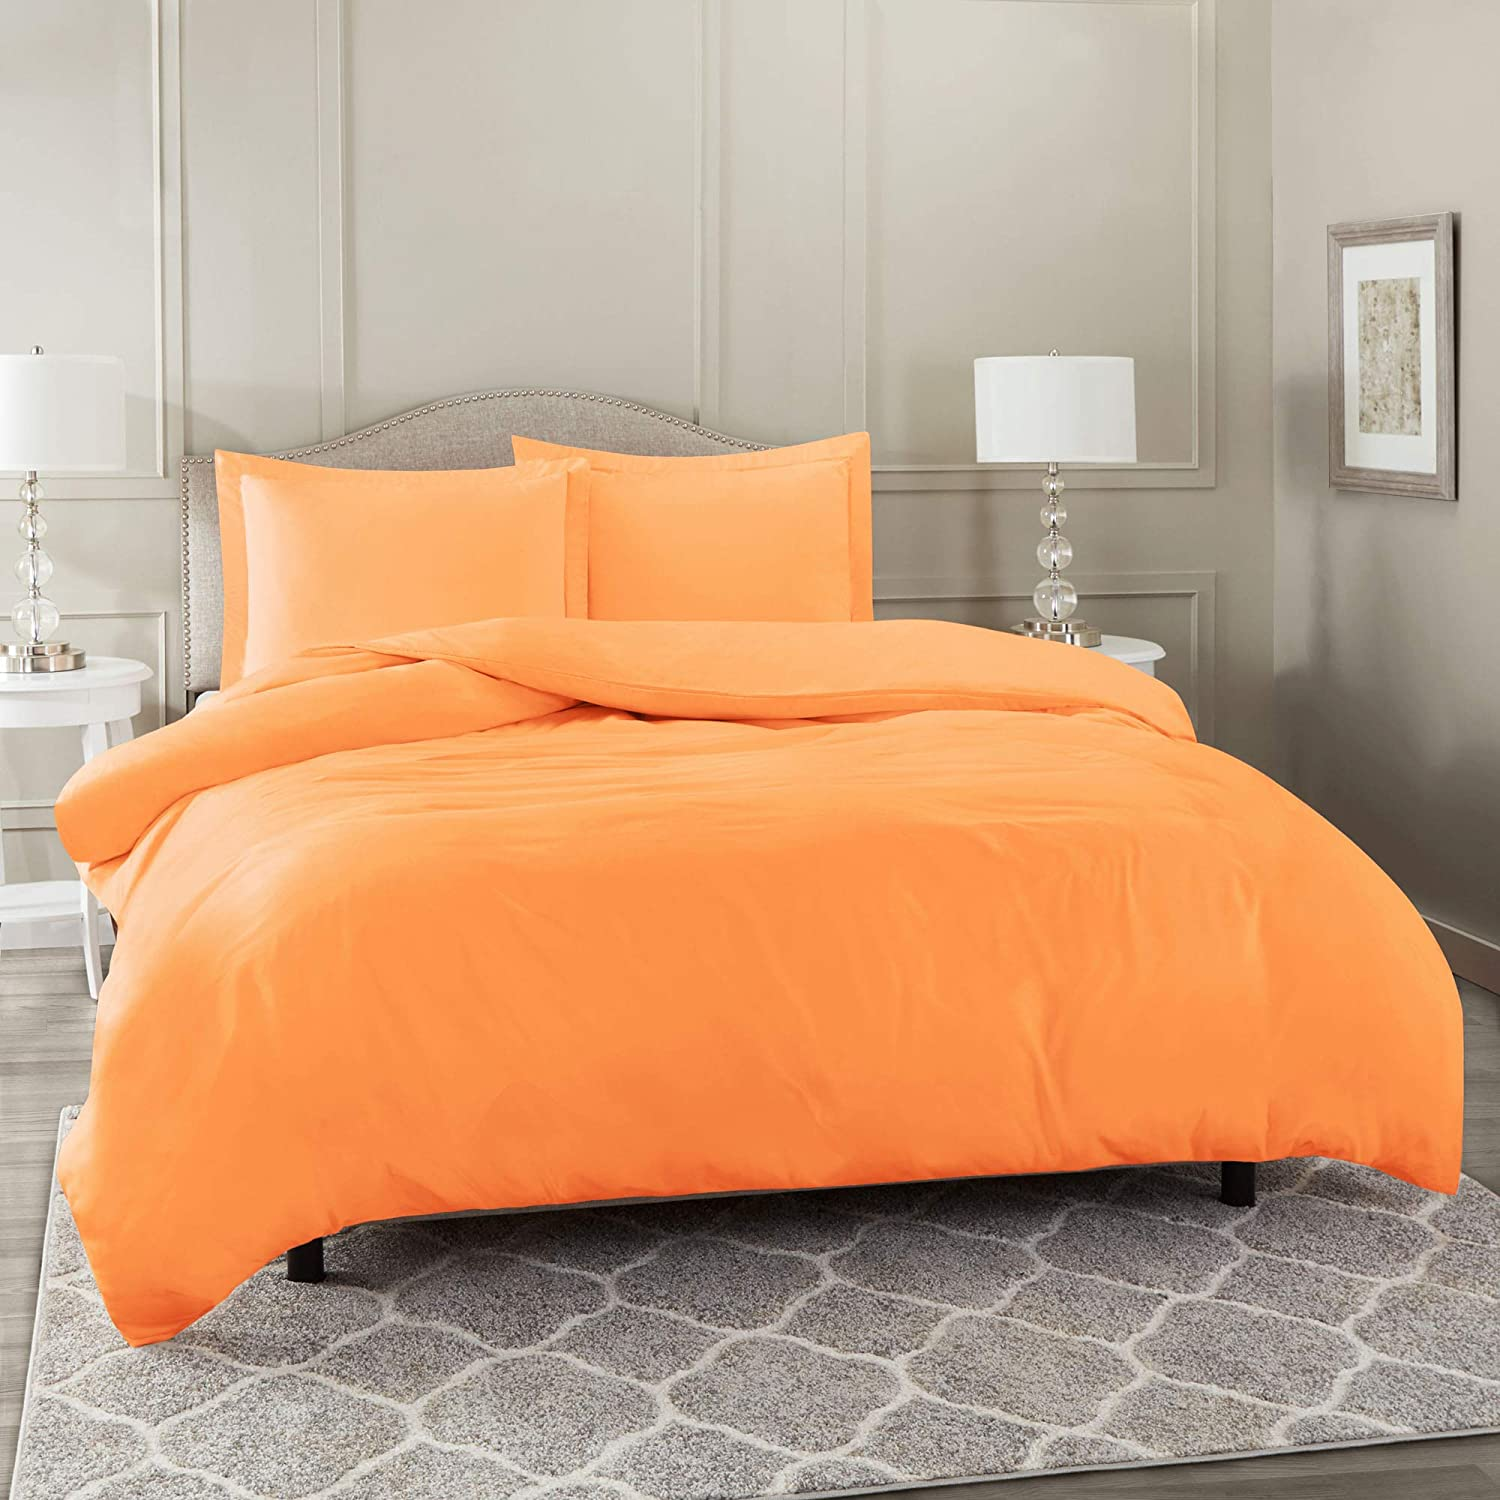 "Nestl Bedding Duvet Cover 3 Piece Set – Ultra Soft Double Brushed Microfiber Hotel Collection – Comforter Cover with Button Closure and 2 Pillow Shams, Light Orange - Queen 90""x90"""